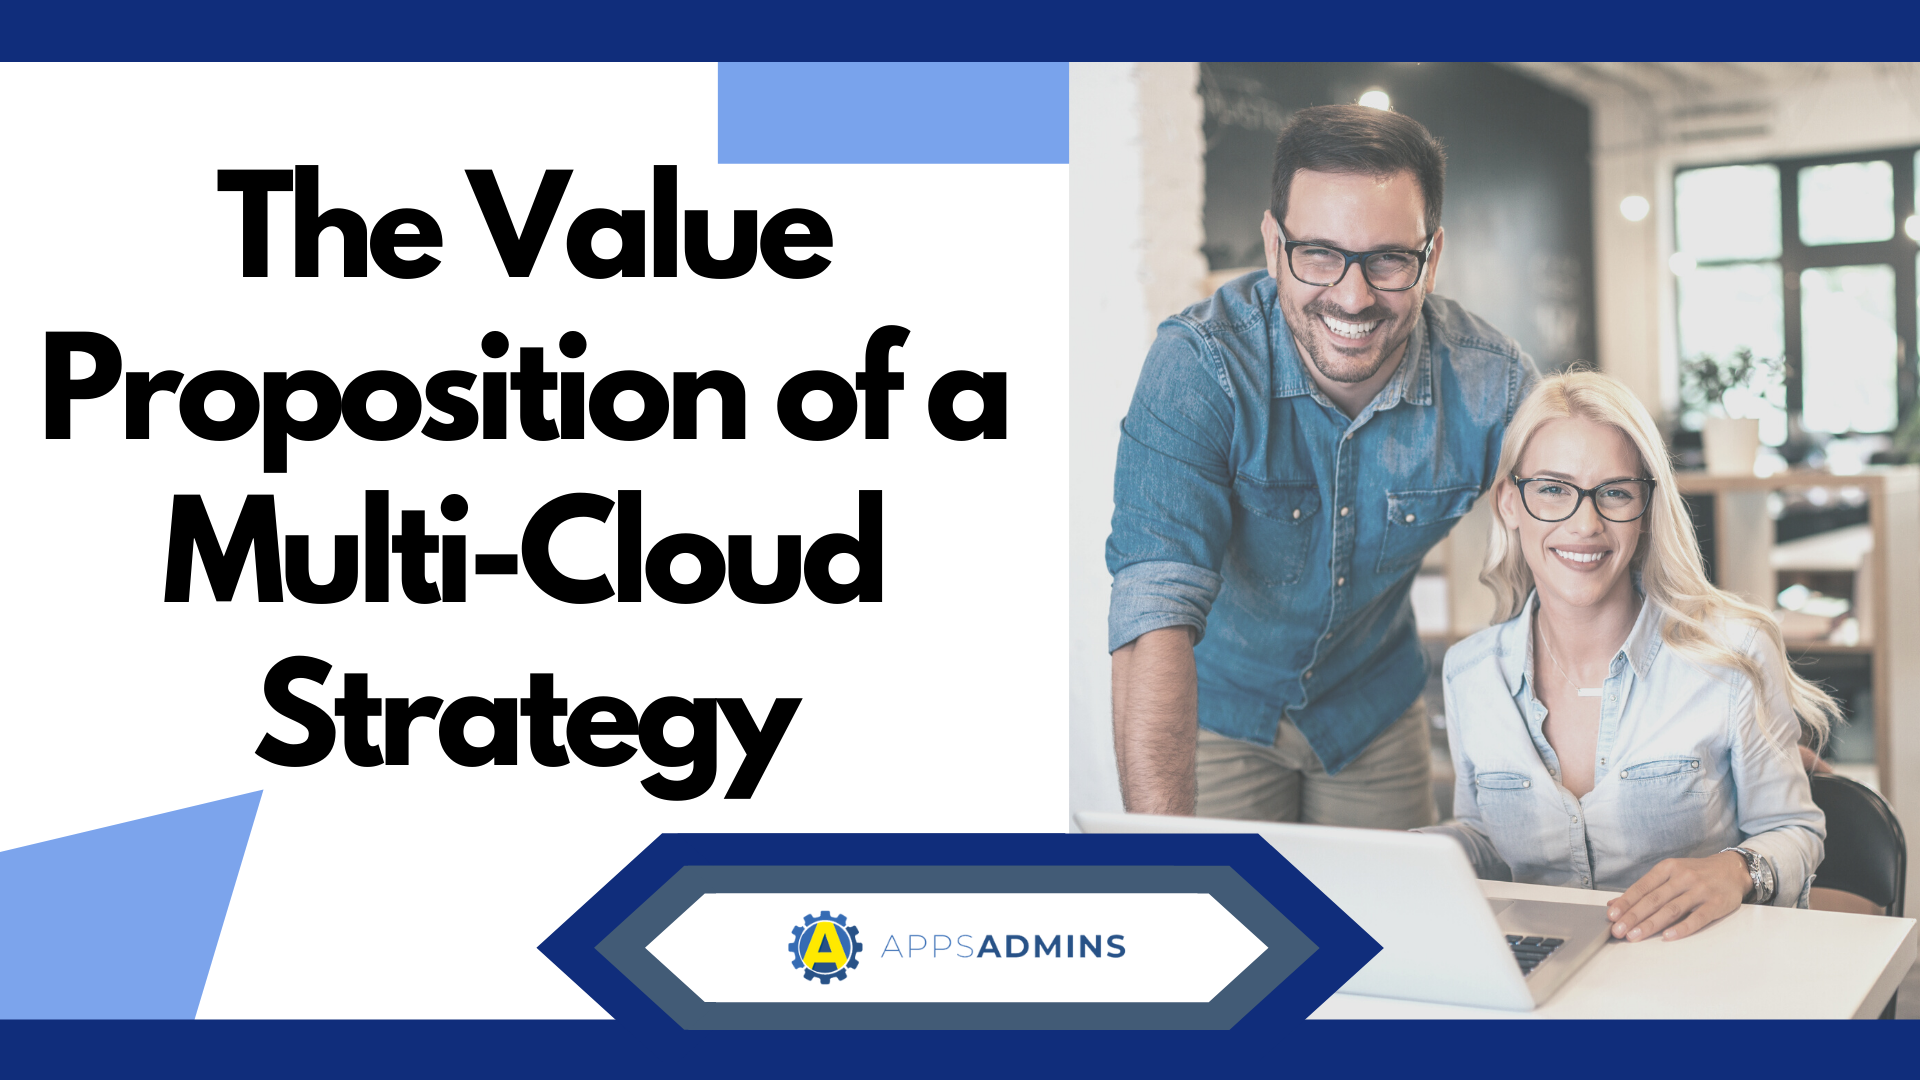 The Value Proposition of a Multi-Cloud Strategy